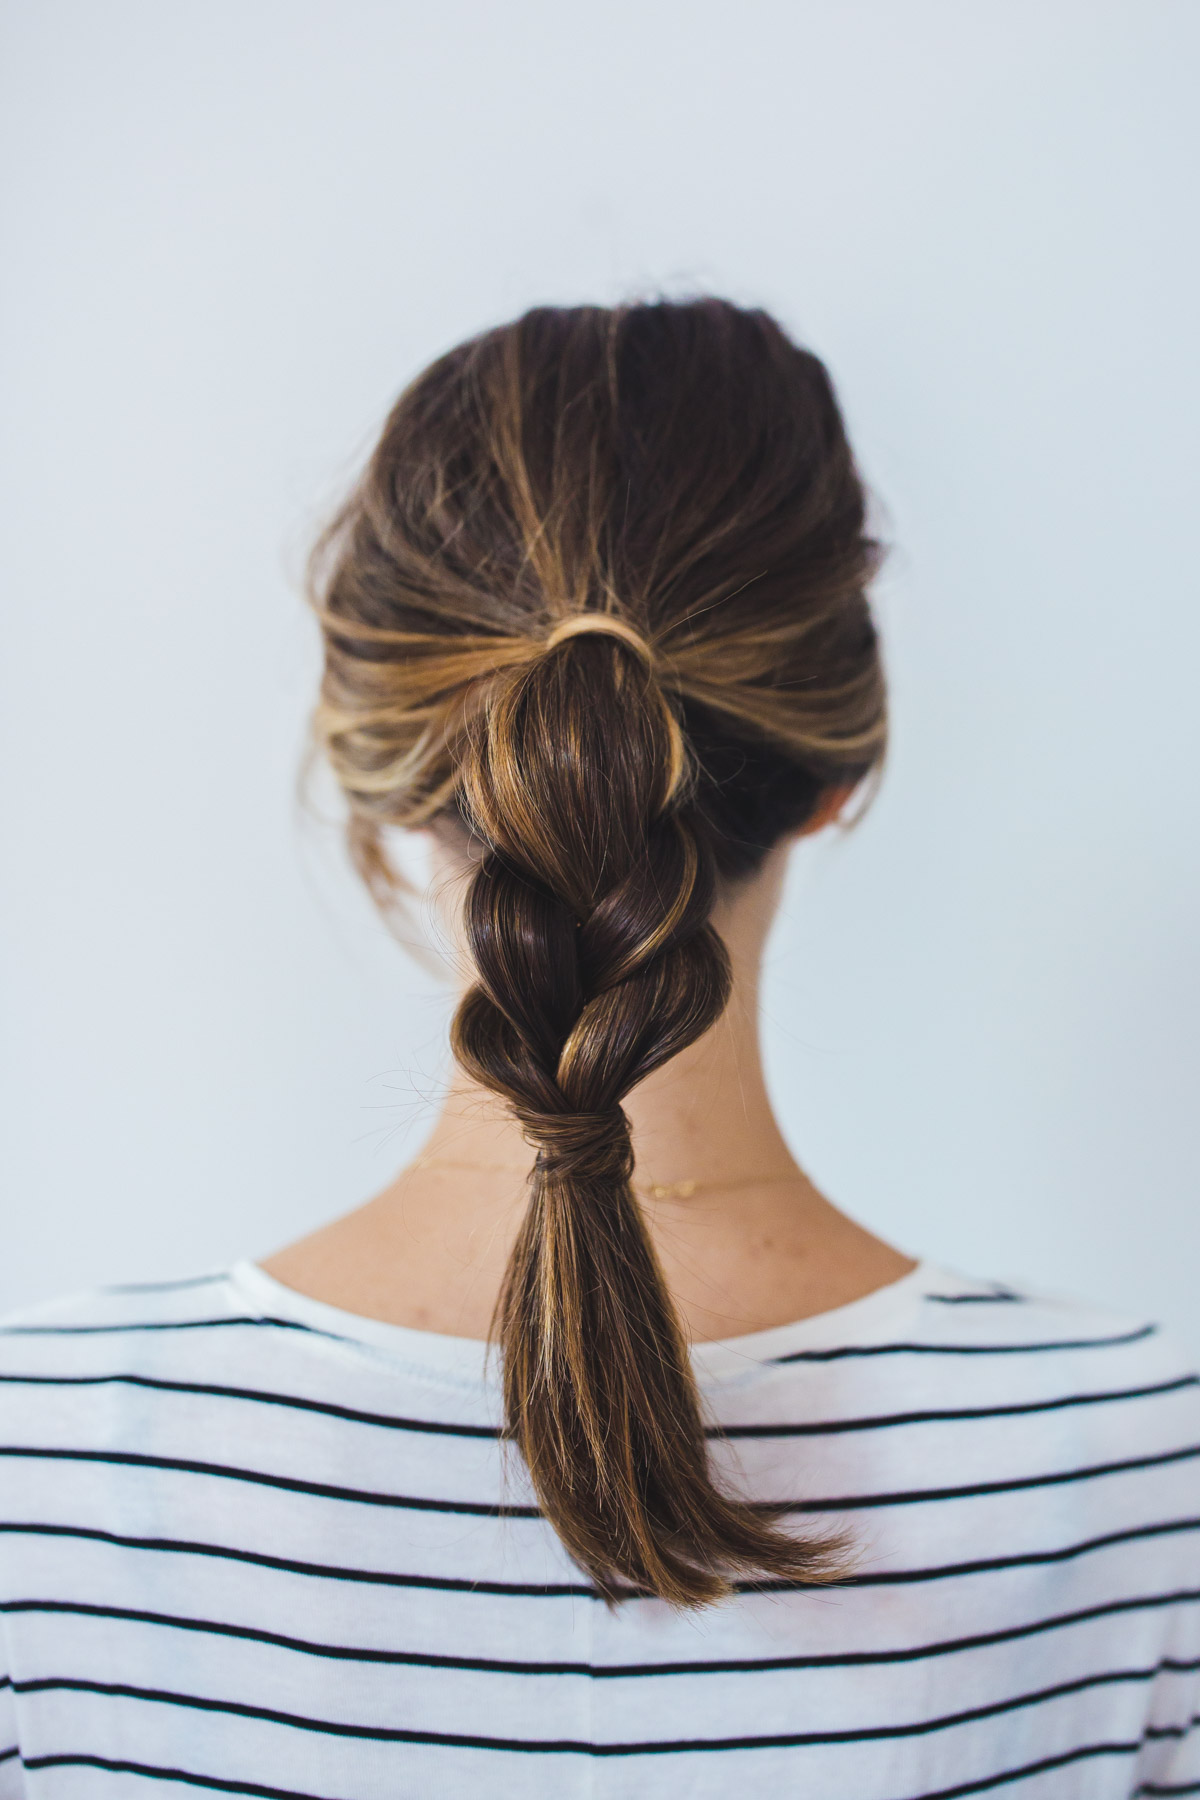 2 Insanely Easy Ponytail Hairstyles The Fox & She